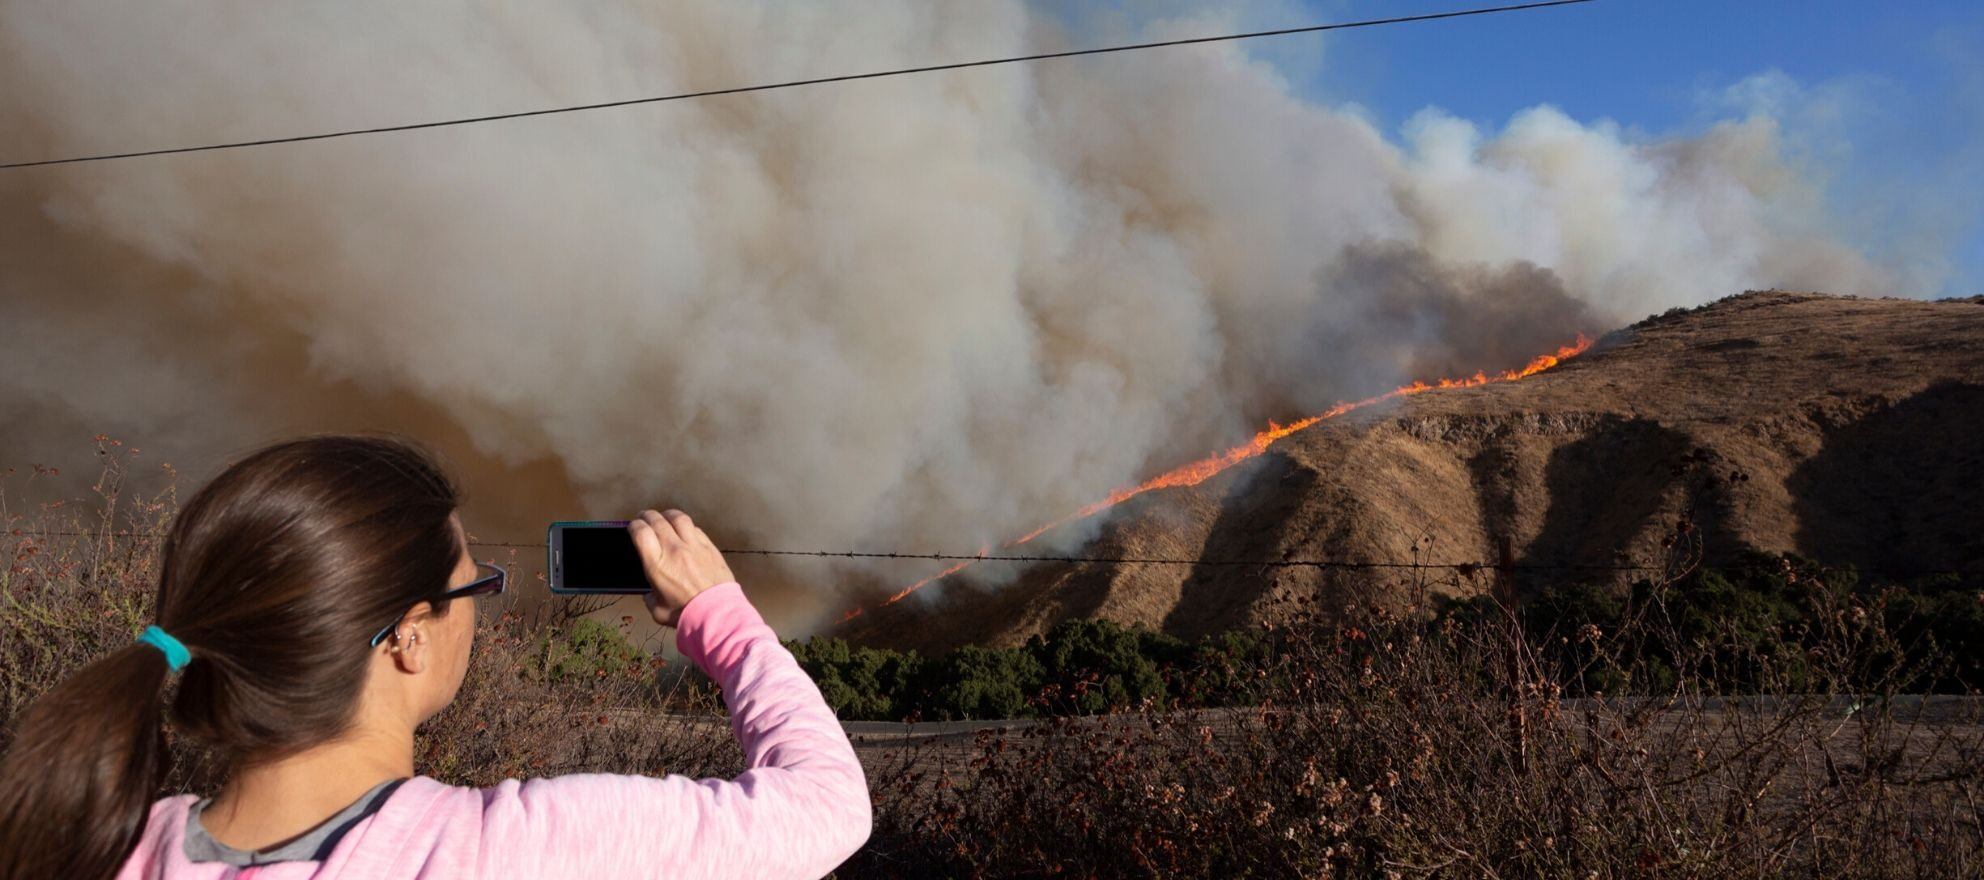 Nearly 1,000 California homes at risk with latest string of wildfires